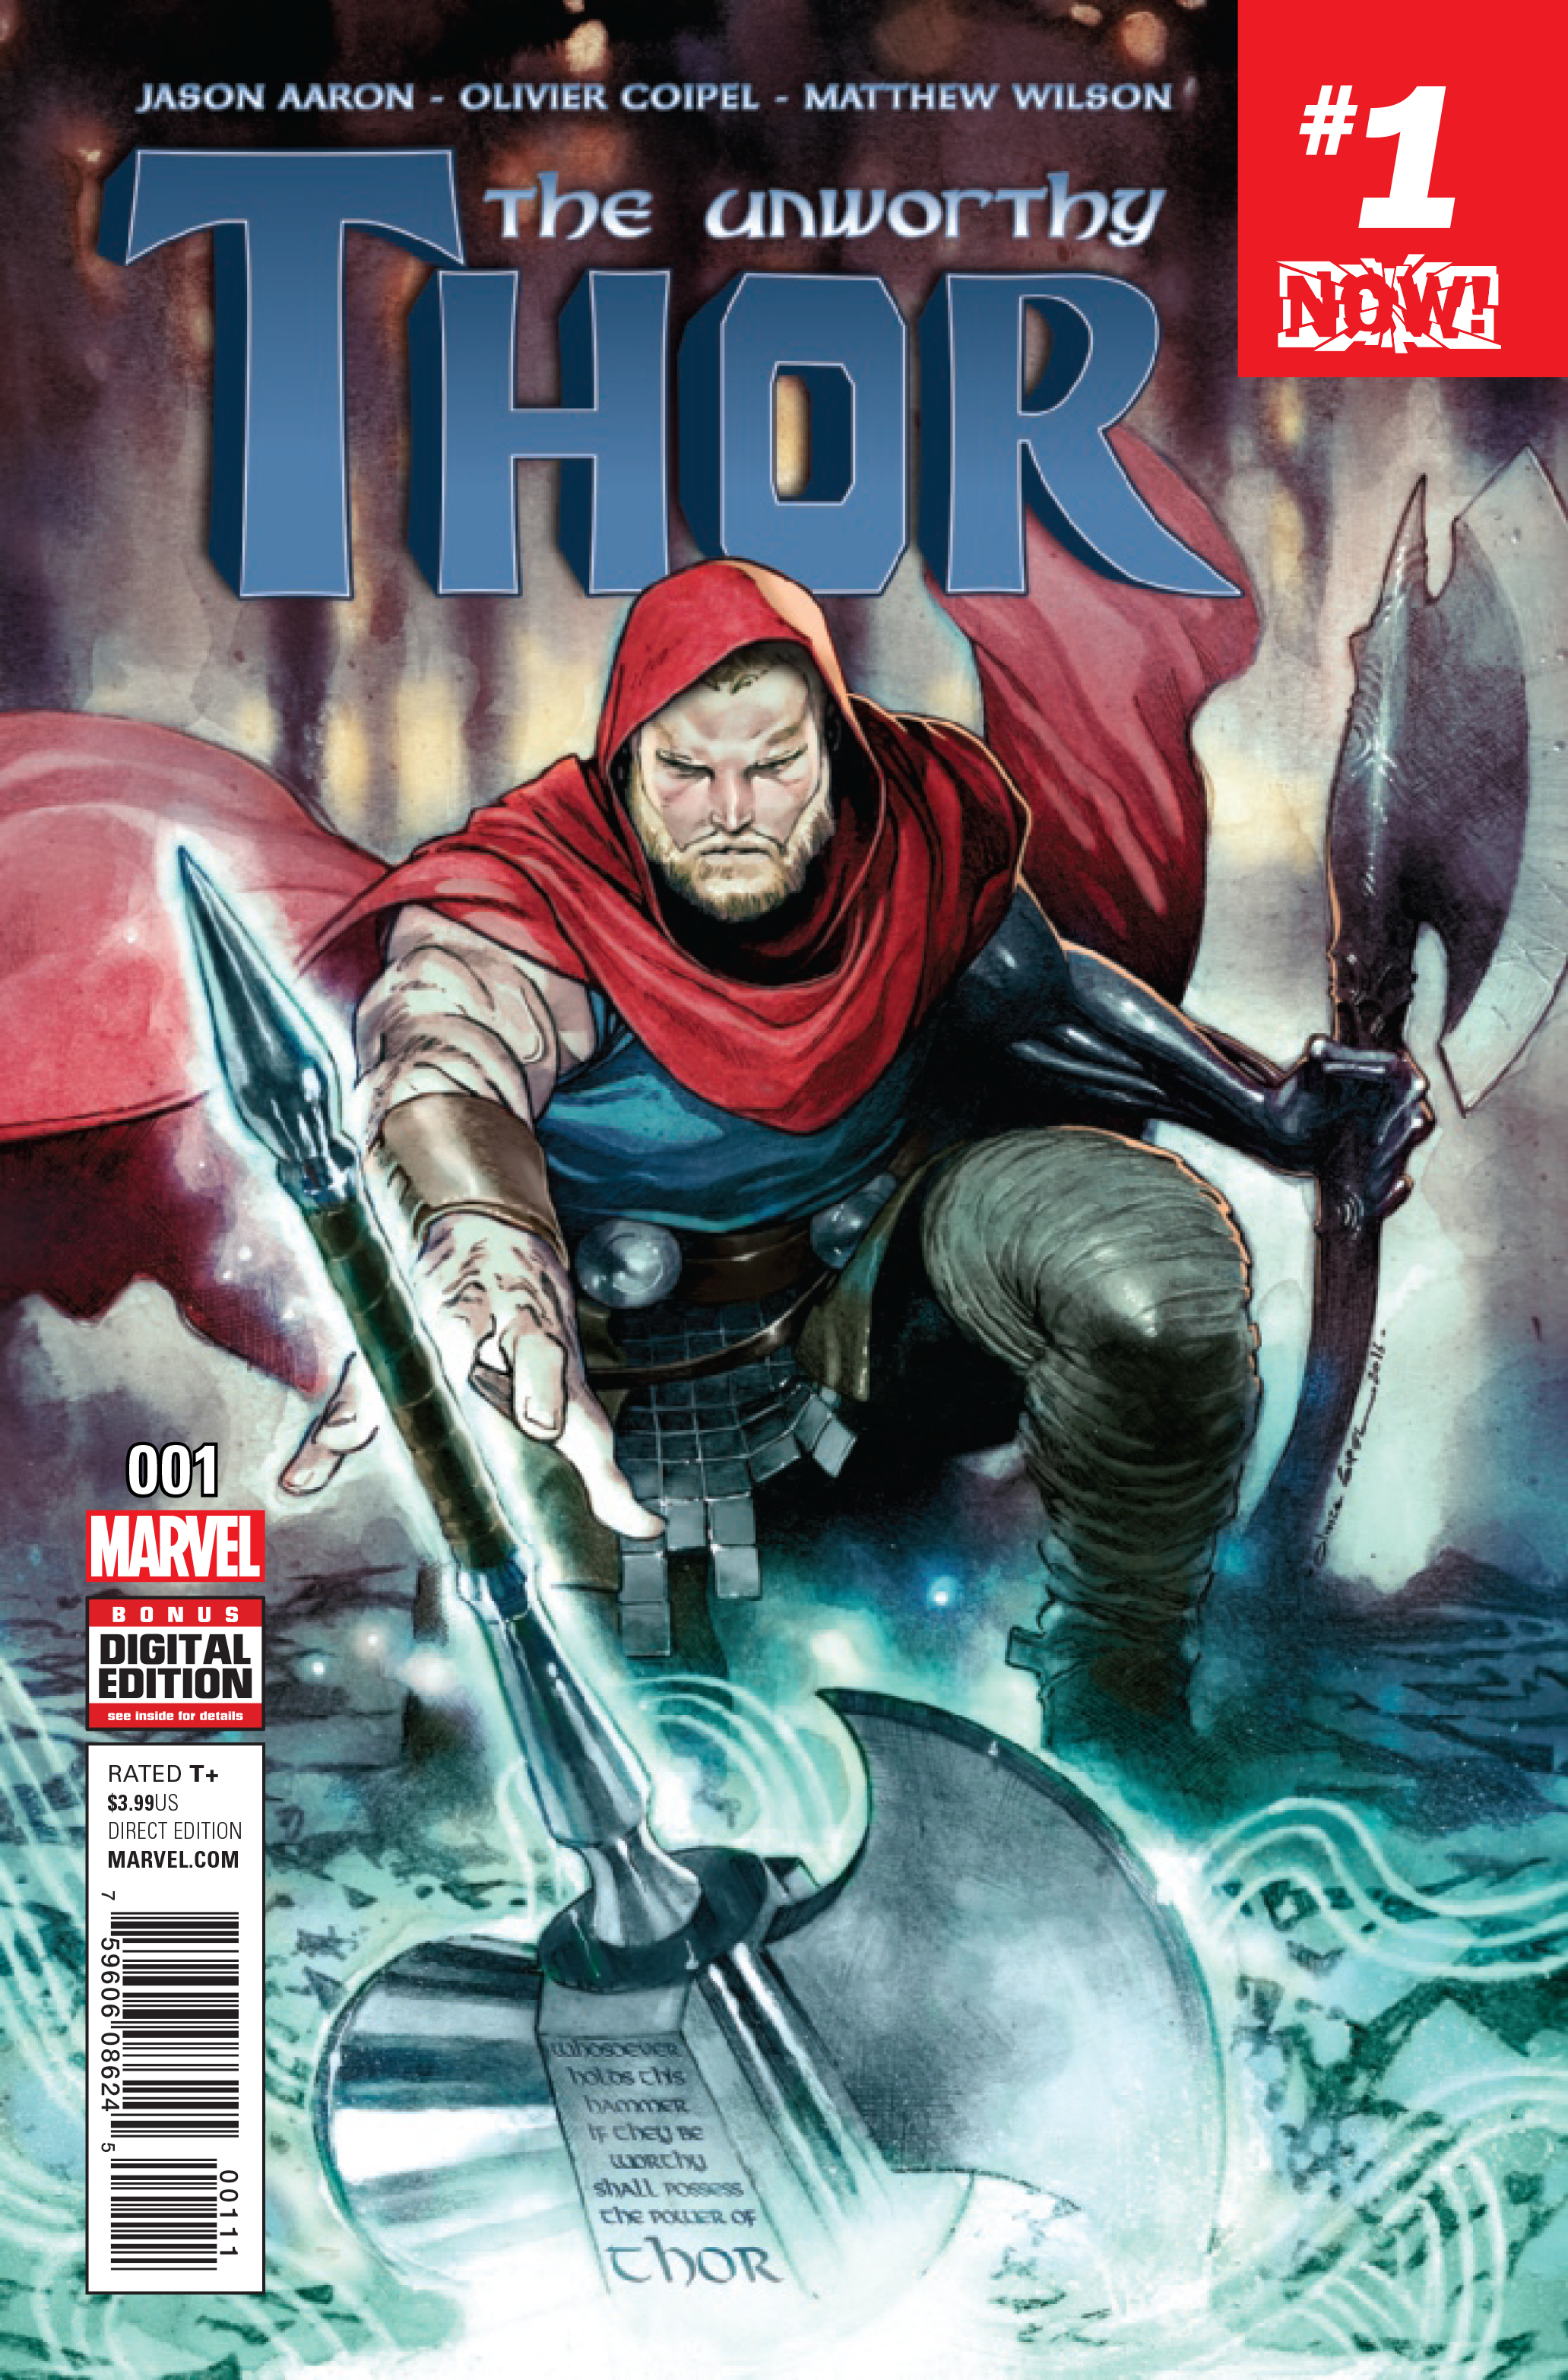 UNWORTHY THOR #1 (OF 5) NOW